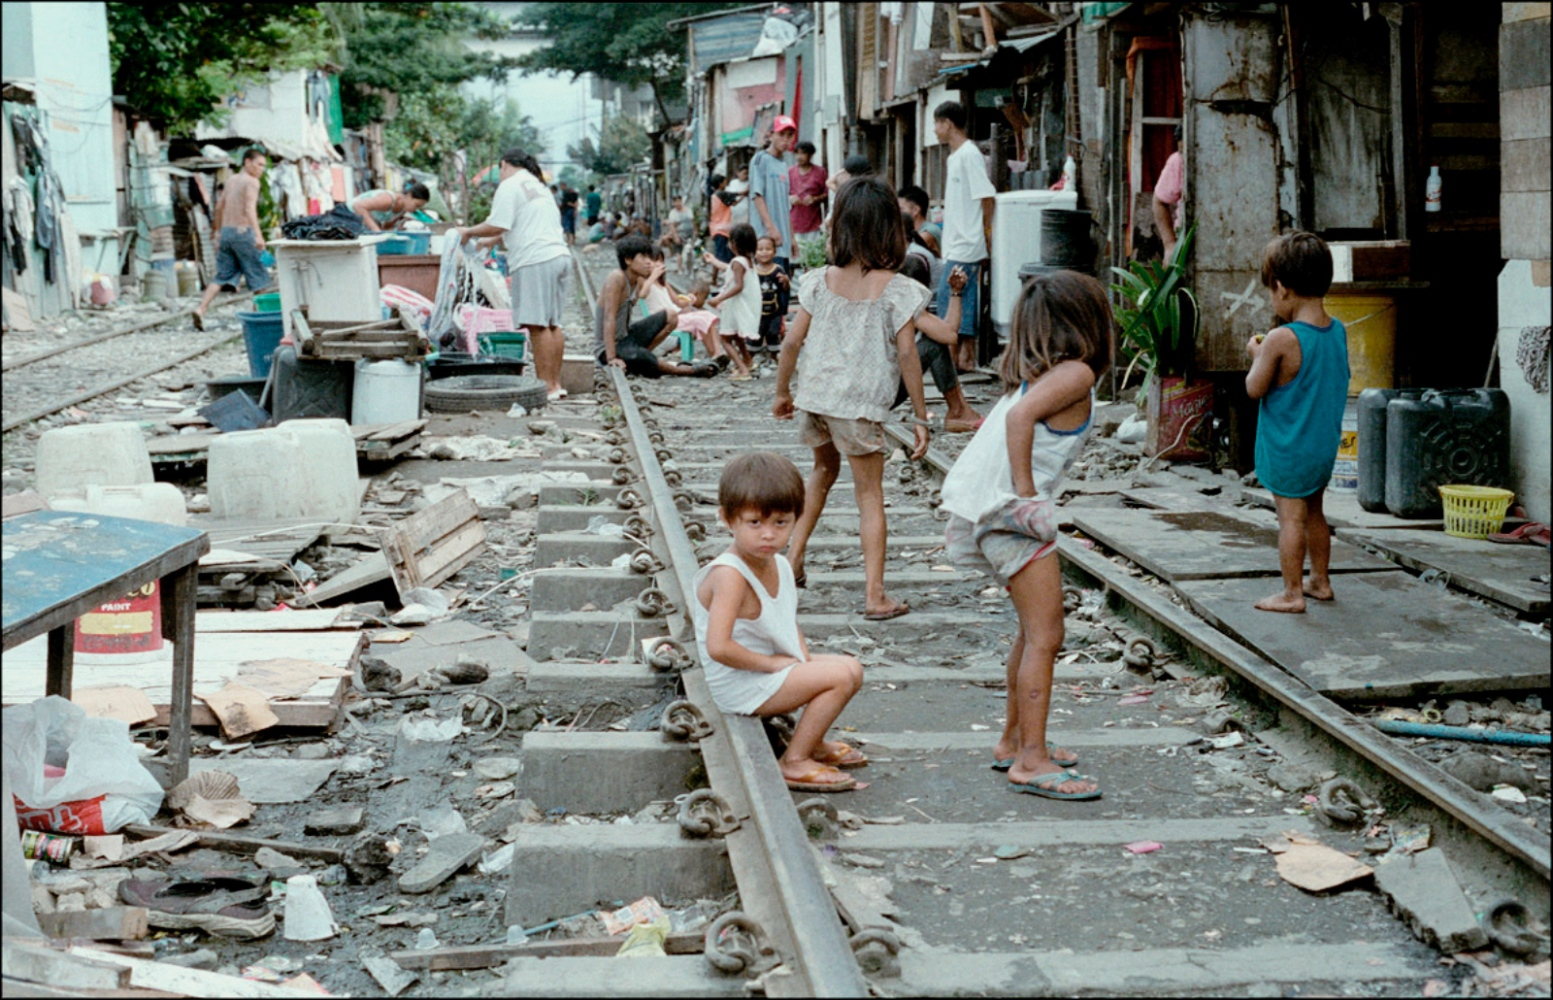 Child Sitting on Train Tracks, San Andreas Bridge, Manila, Philippines, November 2005